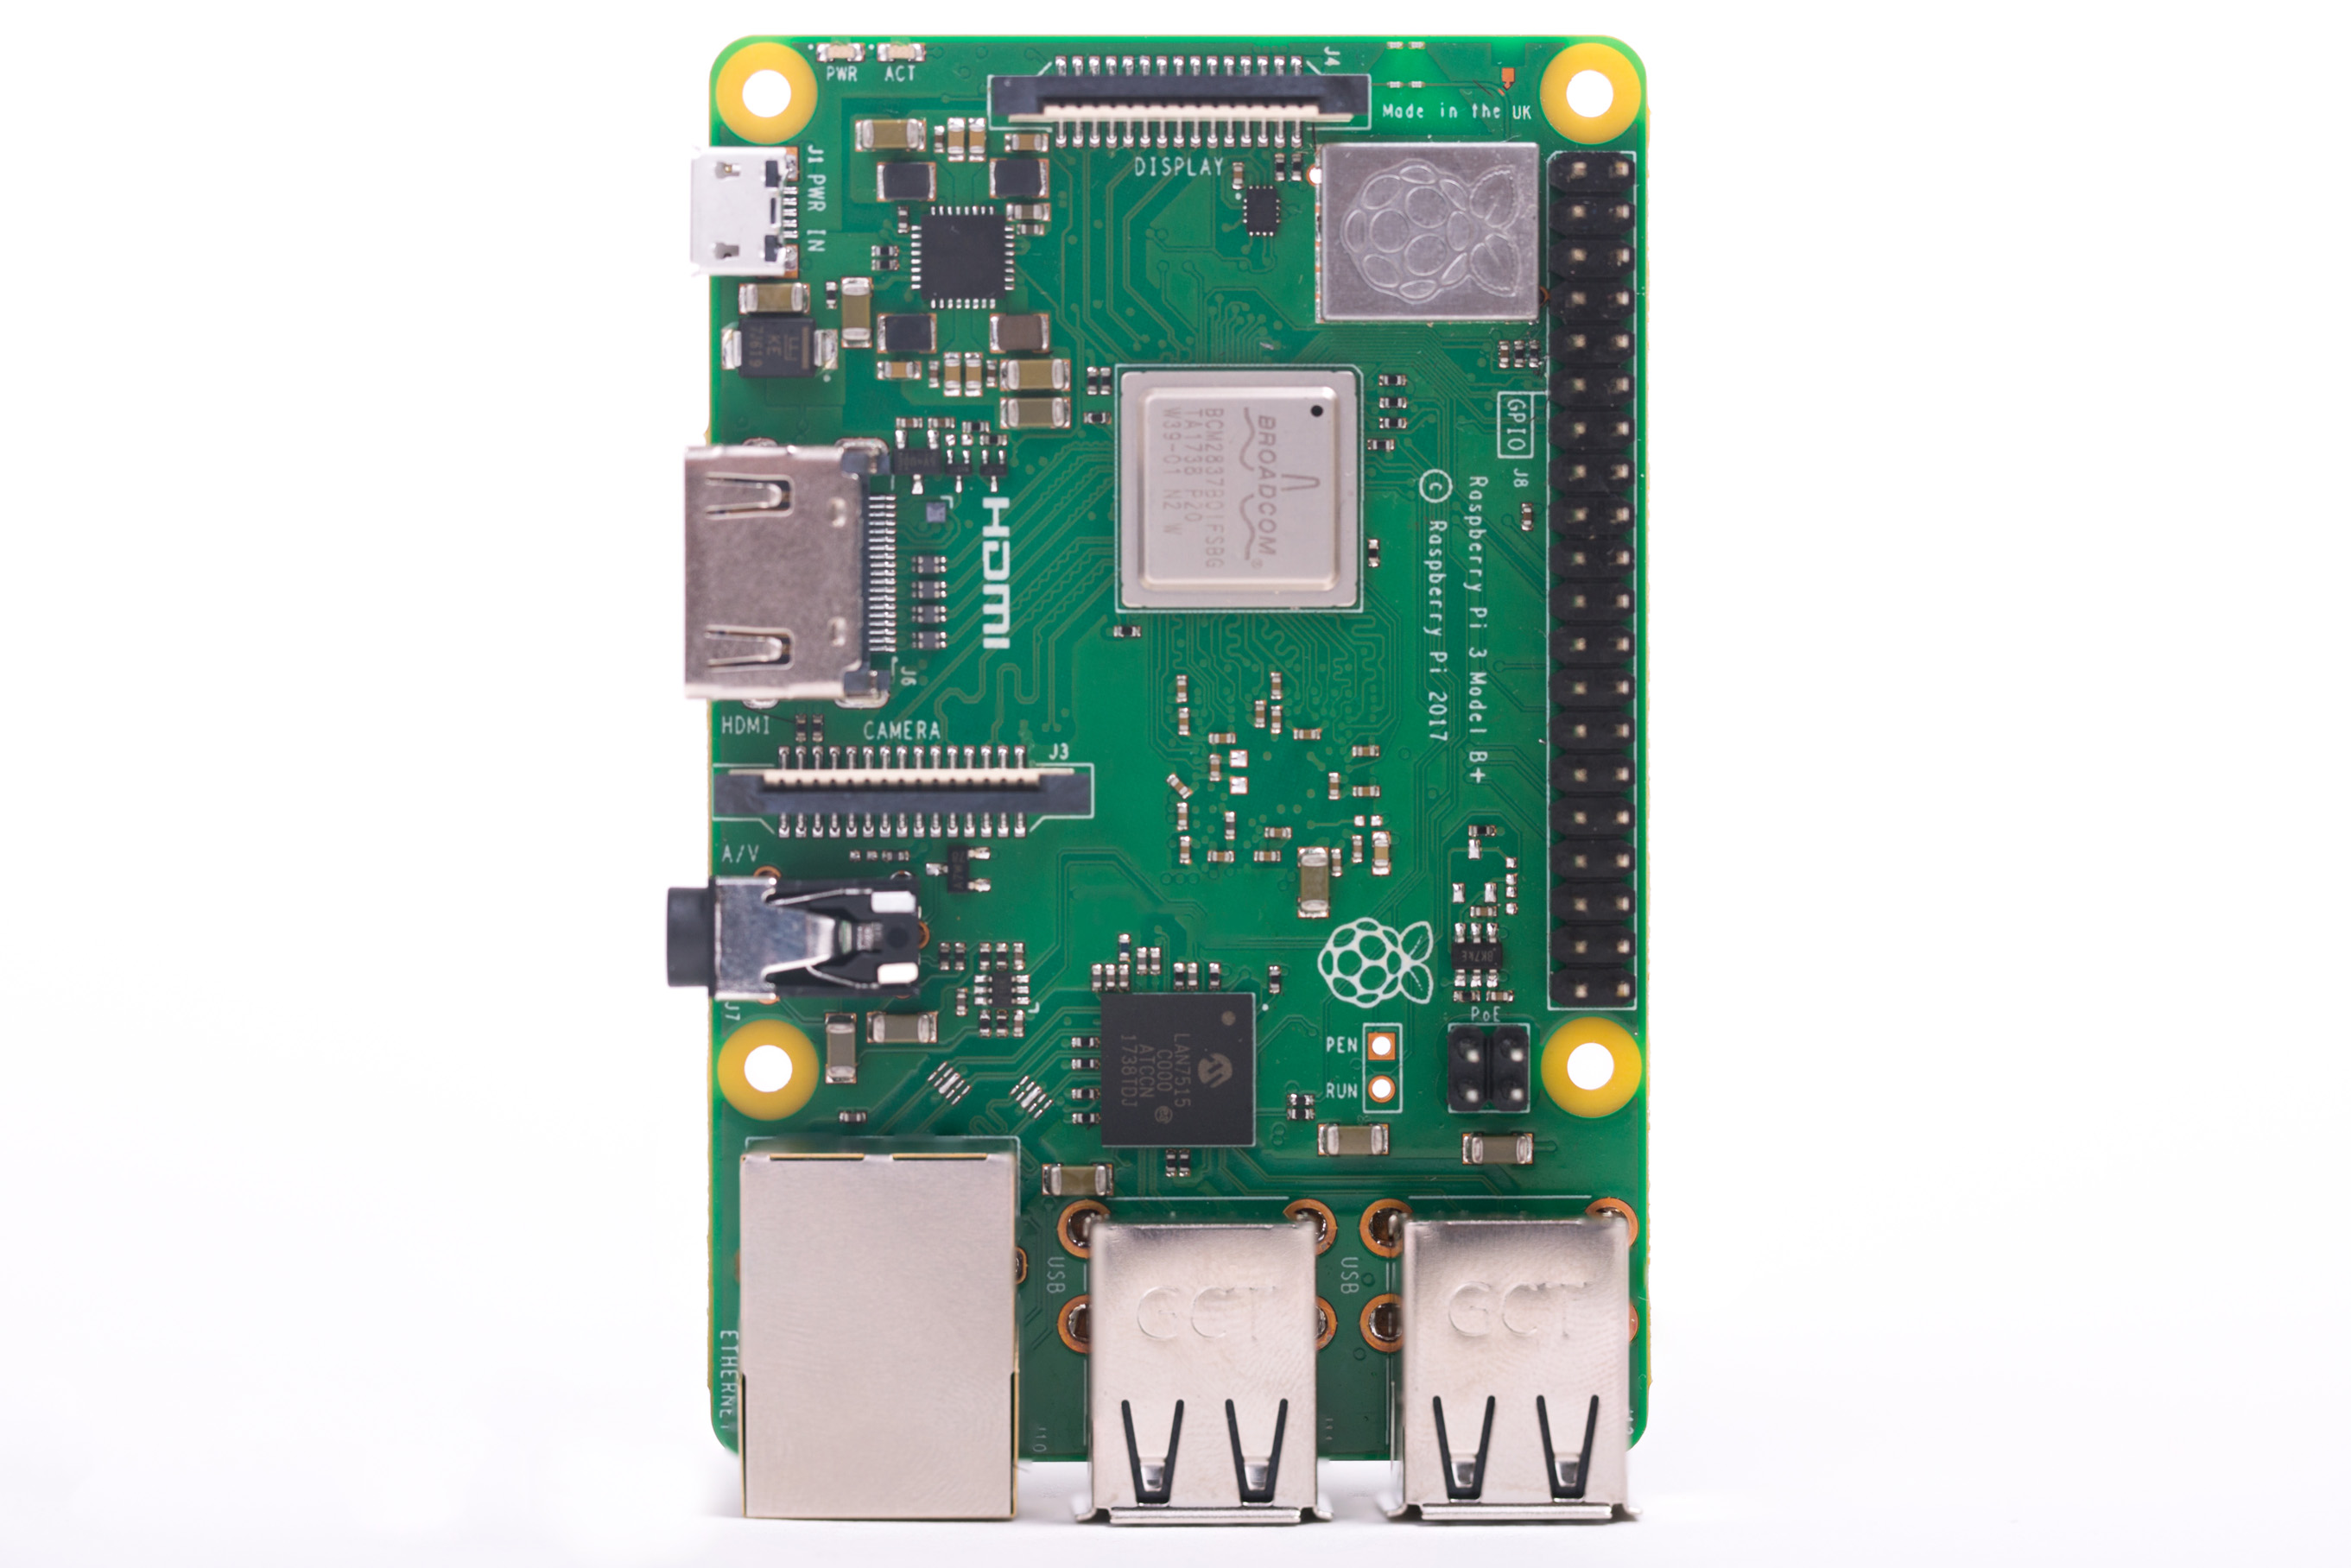 Brand new Raspberry Pi 3 model arrives on Pi Day